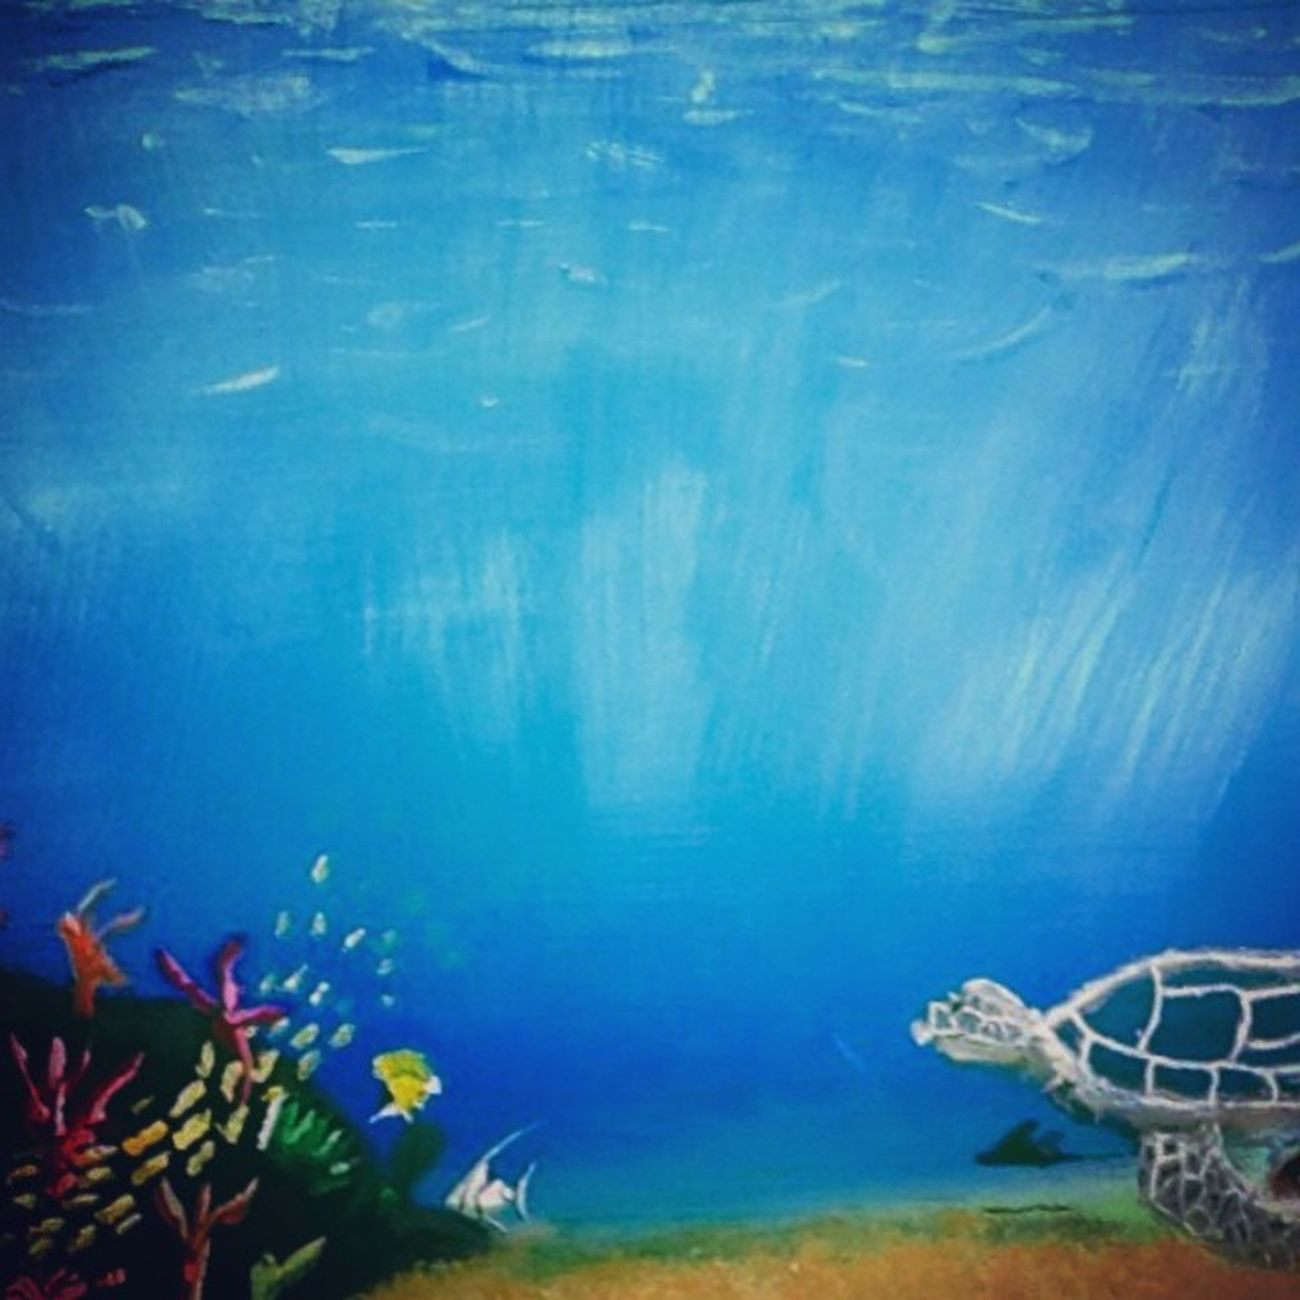 -Blue Vastness, Crawford, 2015-Artproject Painting Art School Underthesea Sea Turle